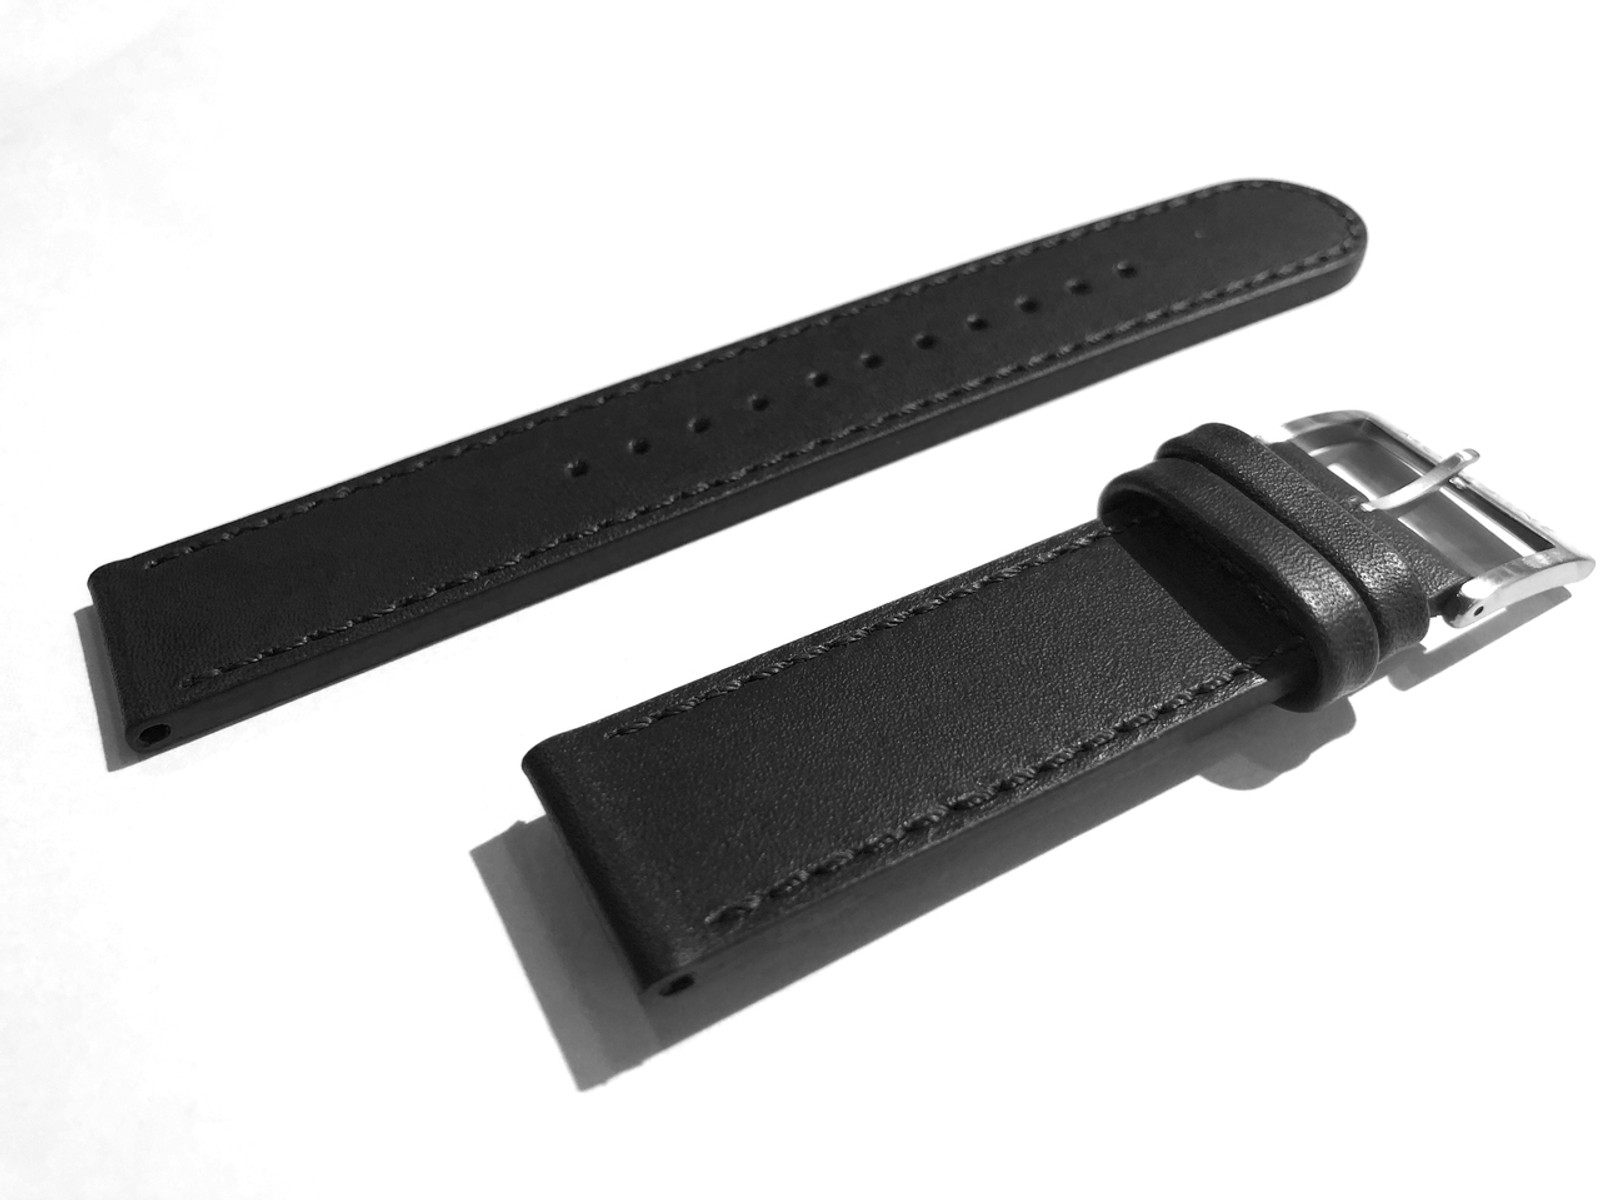 Stitched Leather Strap in BLACK for Stop2Go Watch 20mm